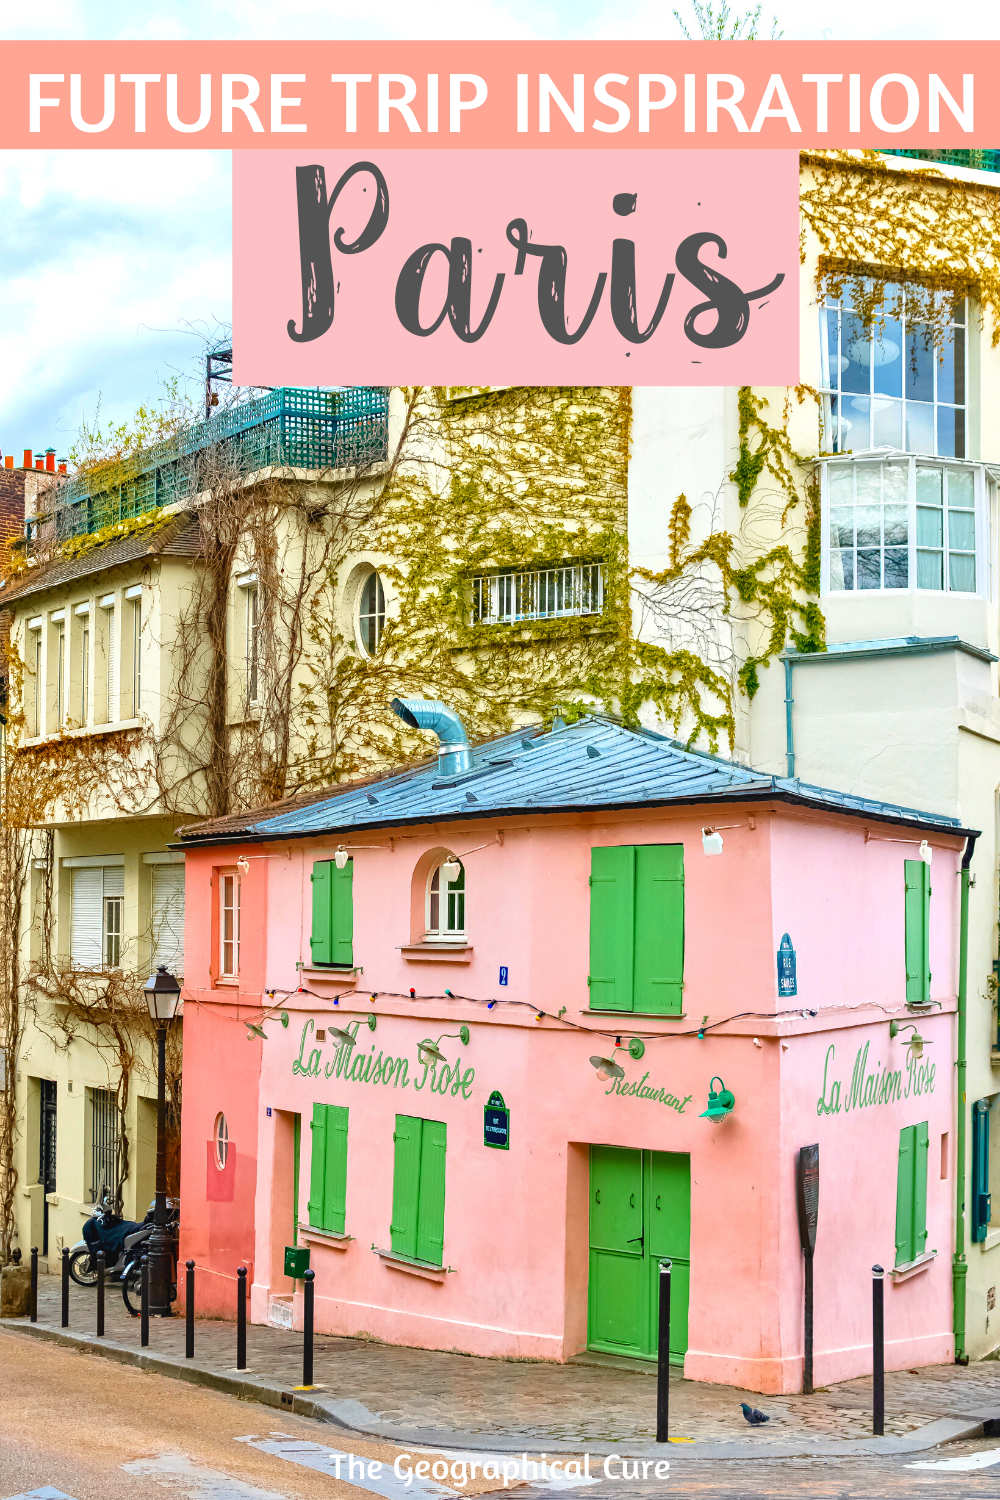 Paris Inspiration: 5 day travel guide and itinerary